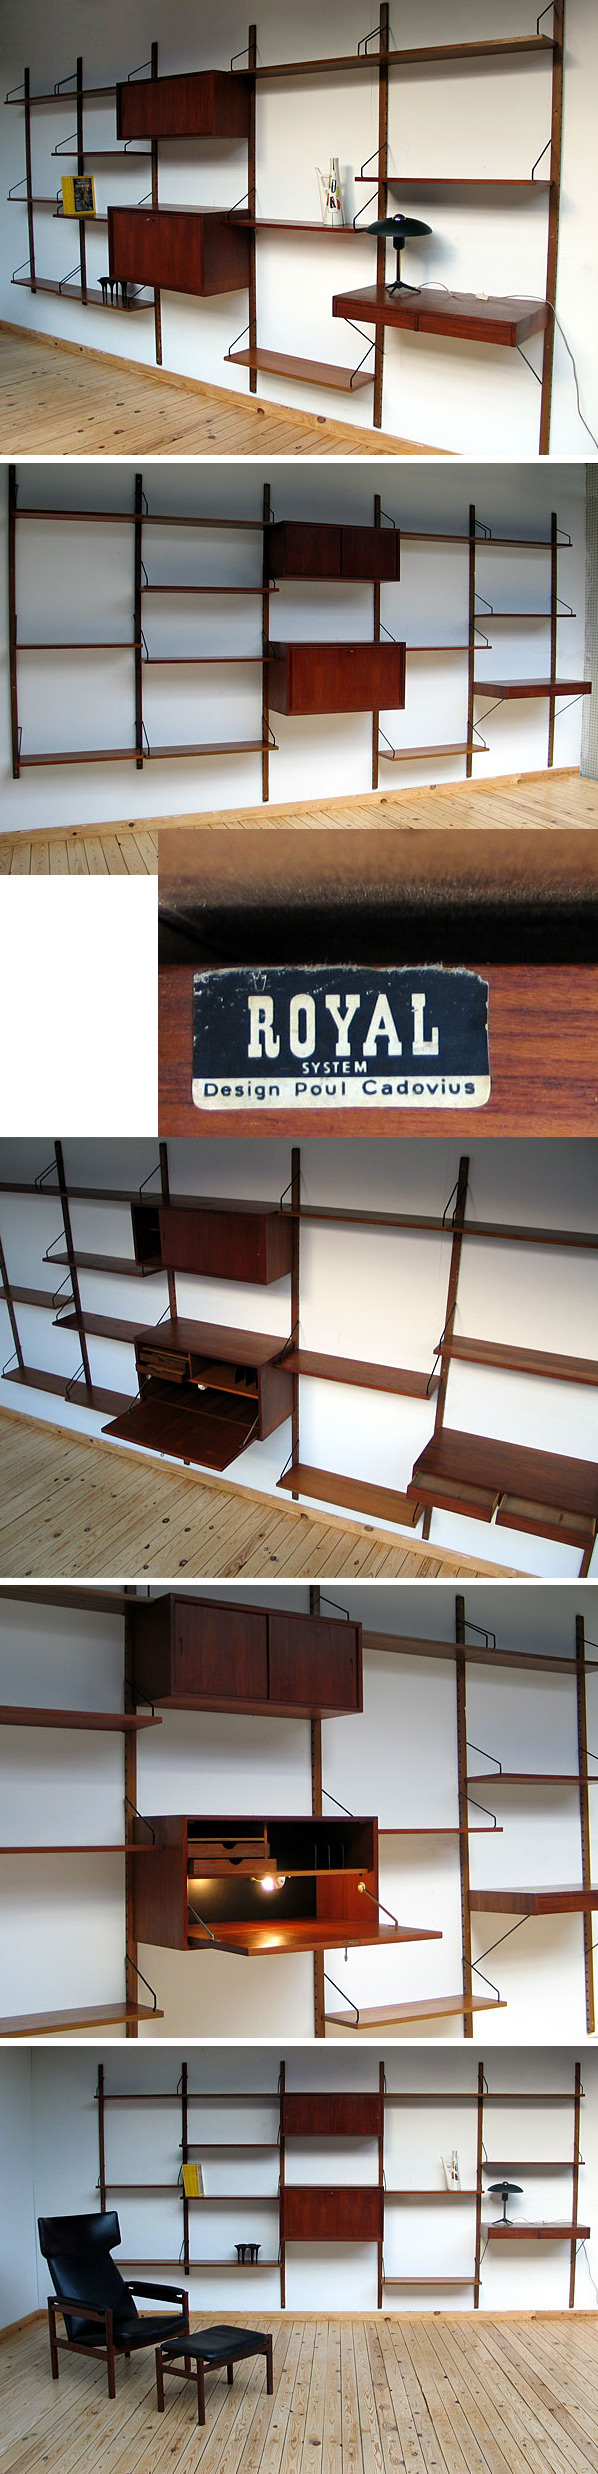 Wall unit ROYAL SYSTEM Design Poul Cadovius Denmark Large